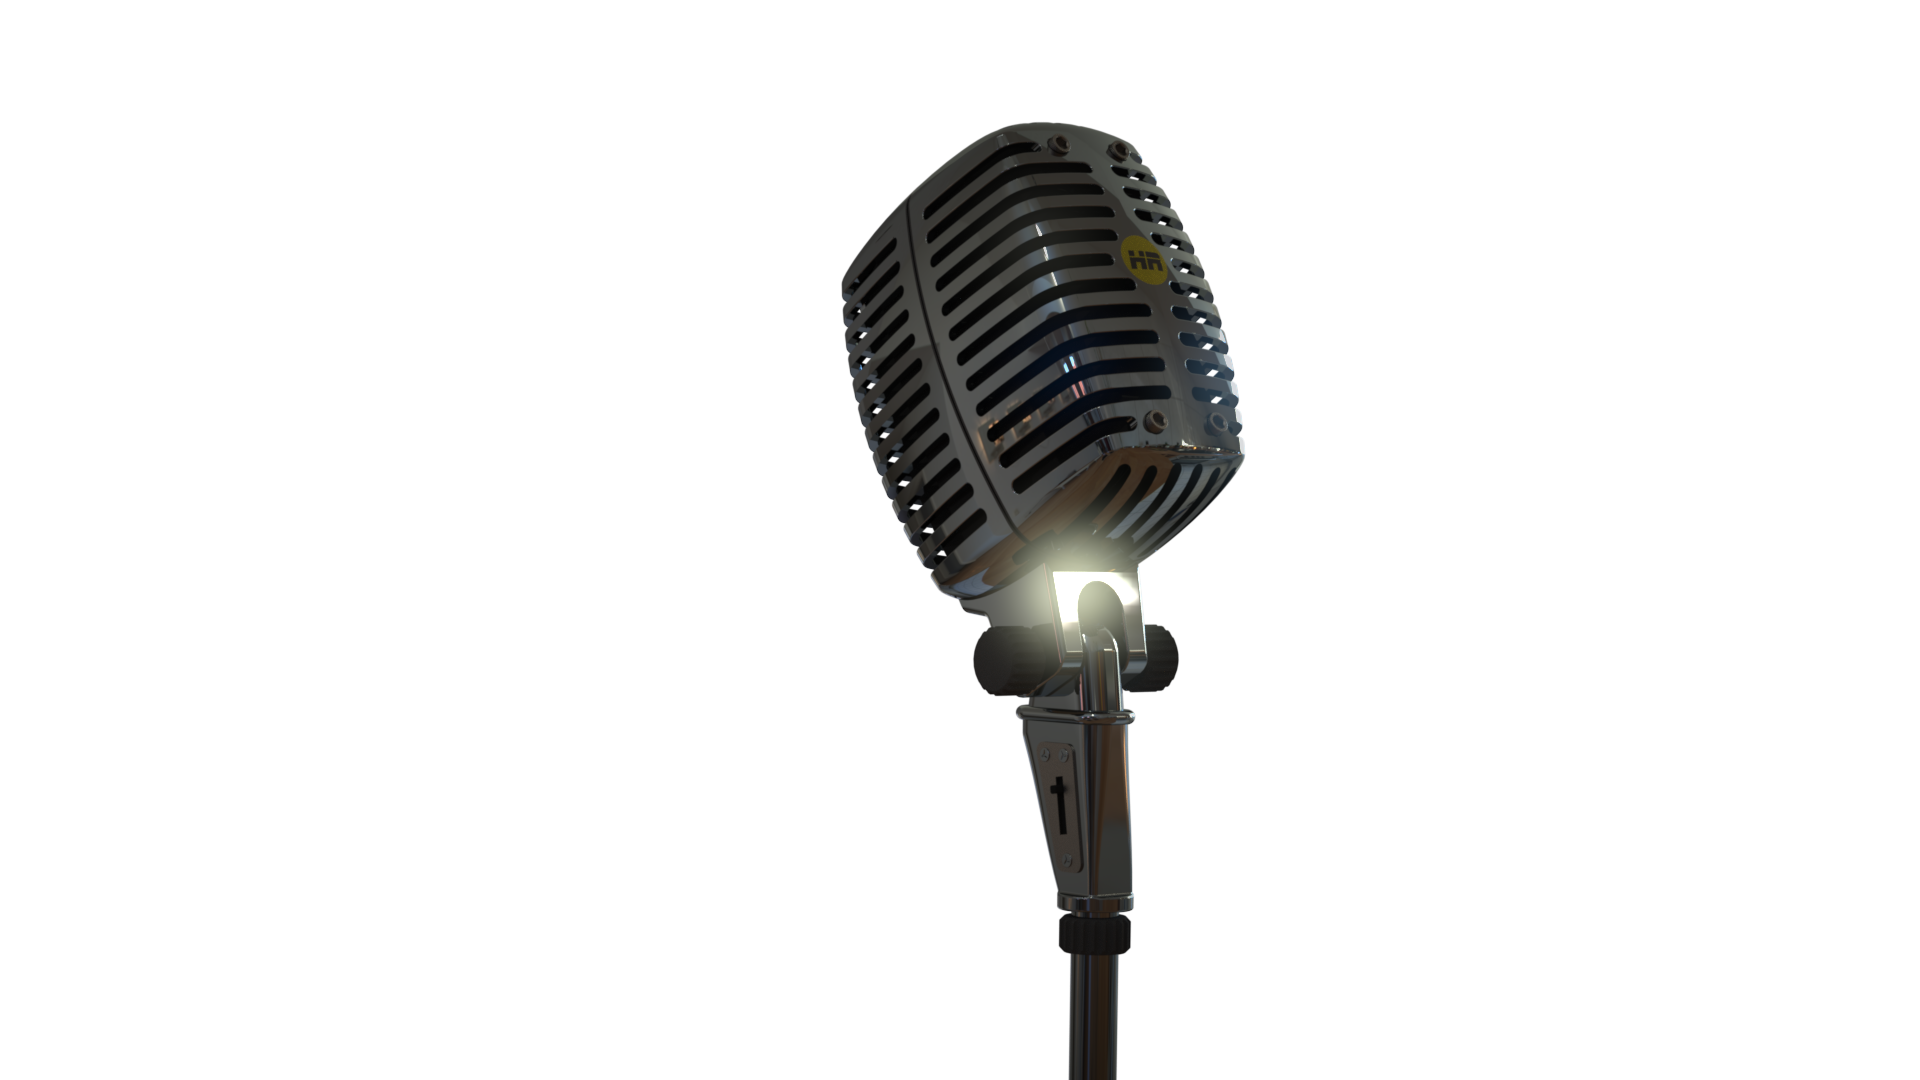 Render of microphone